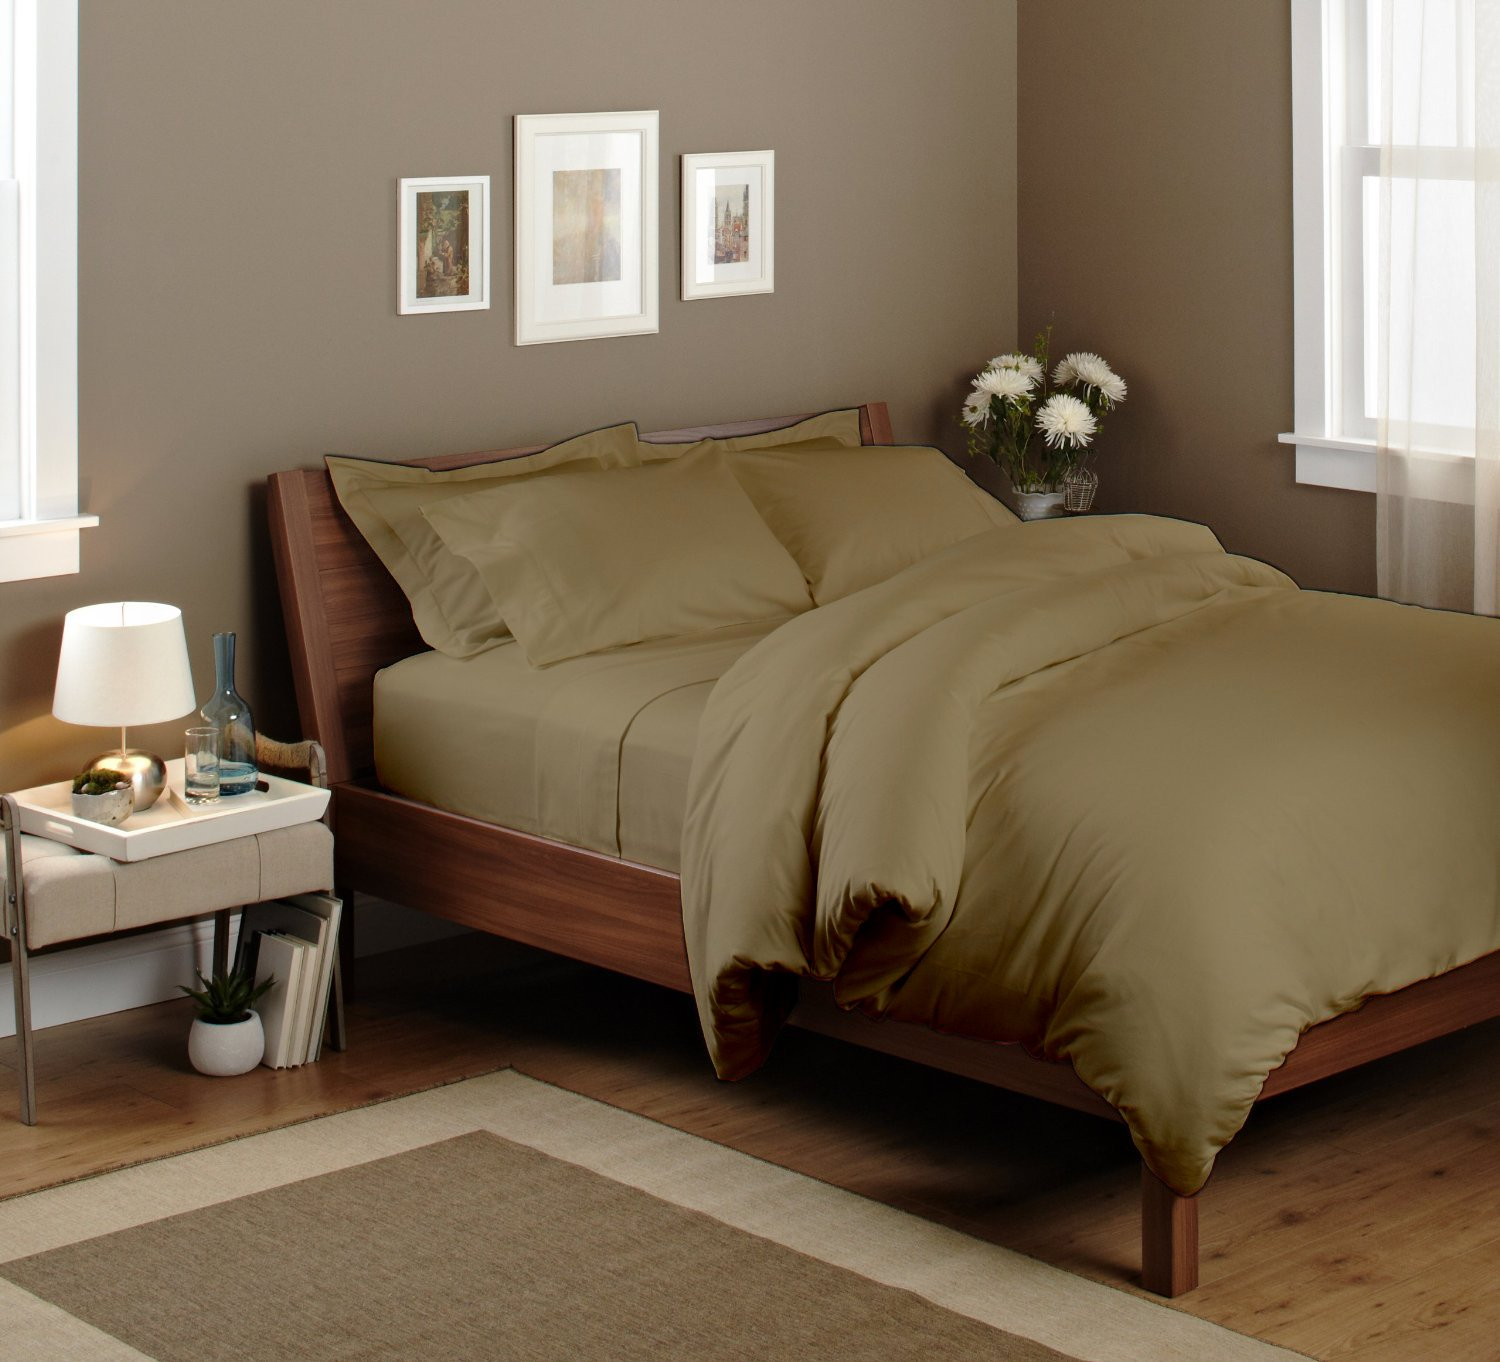 Rainbow Circo 100% Bamboo cotton 600 thread count fill luxurious Italian finish 4 piece premium sheet set comfort Sheet set with 24'' deep pocket made in India (Taupe, Cal-king) by Rainbow Circo (Image #1)